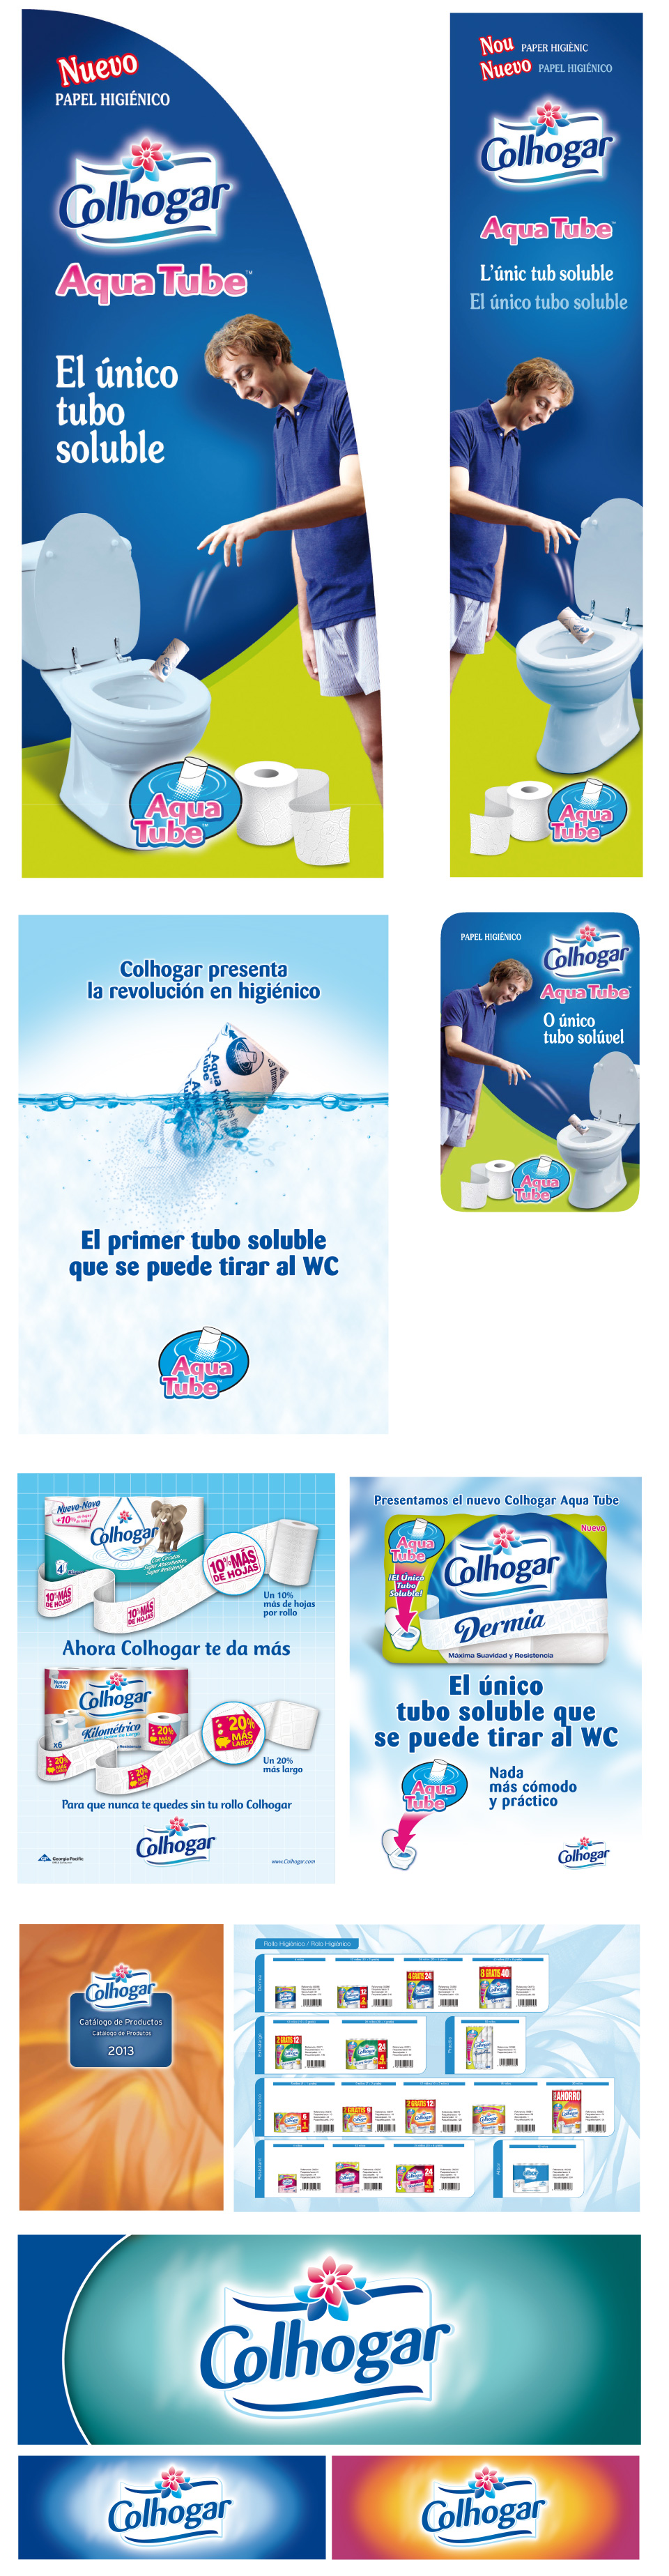 Logotipos y packaging de Colhogar